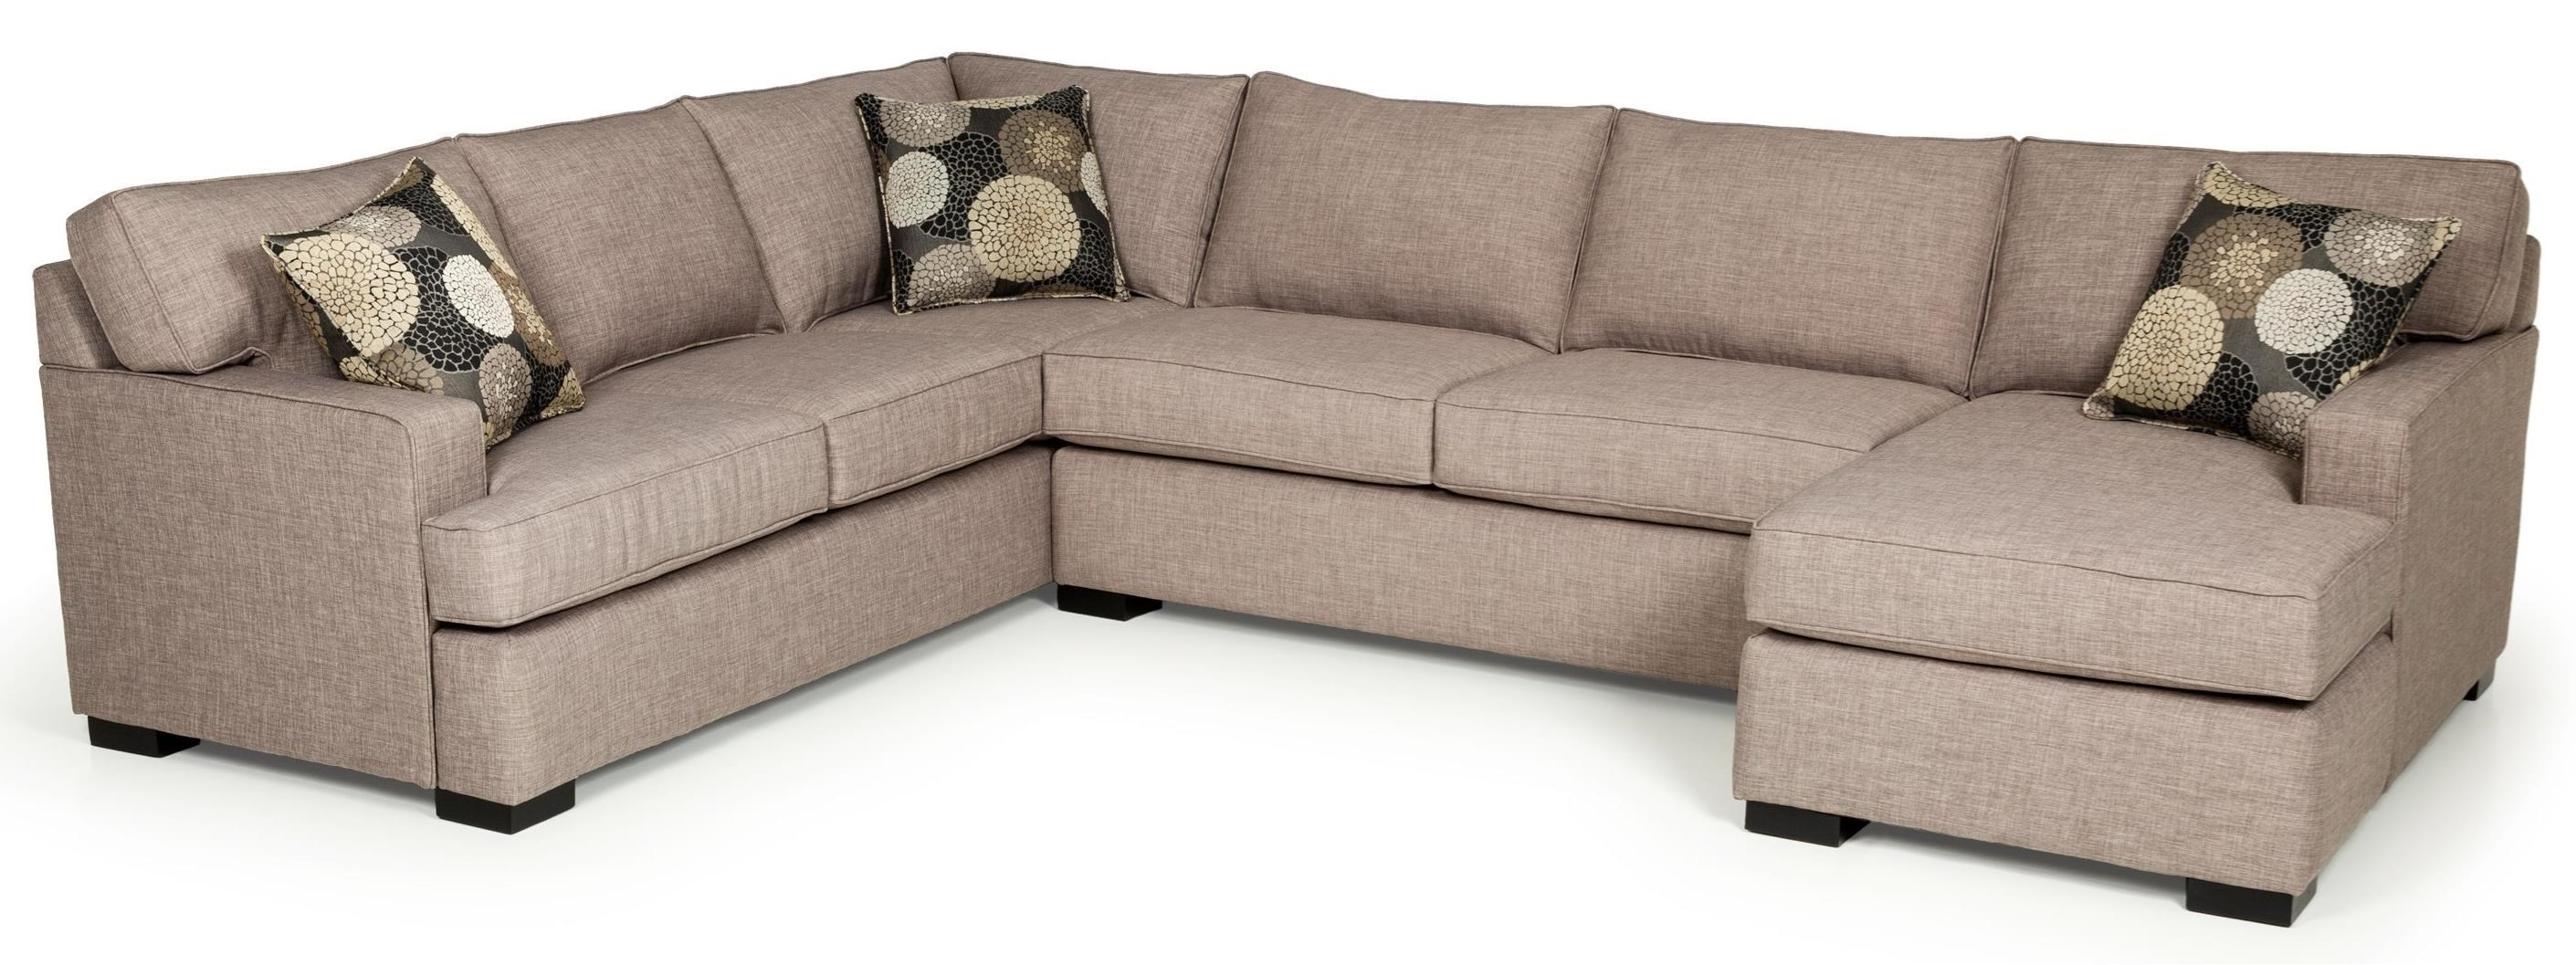 Sofa Modern 146 Contemporary Three Piece Sectional Sofa With Chaise By Stanton At Gallery Furniture